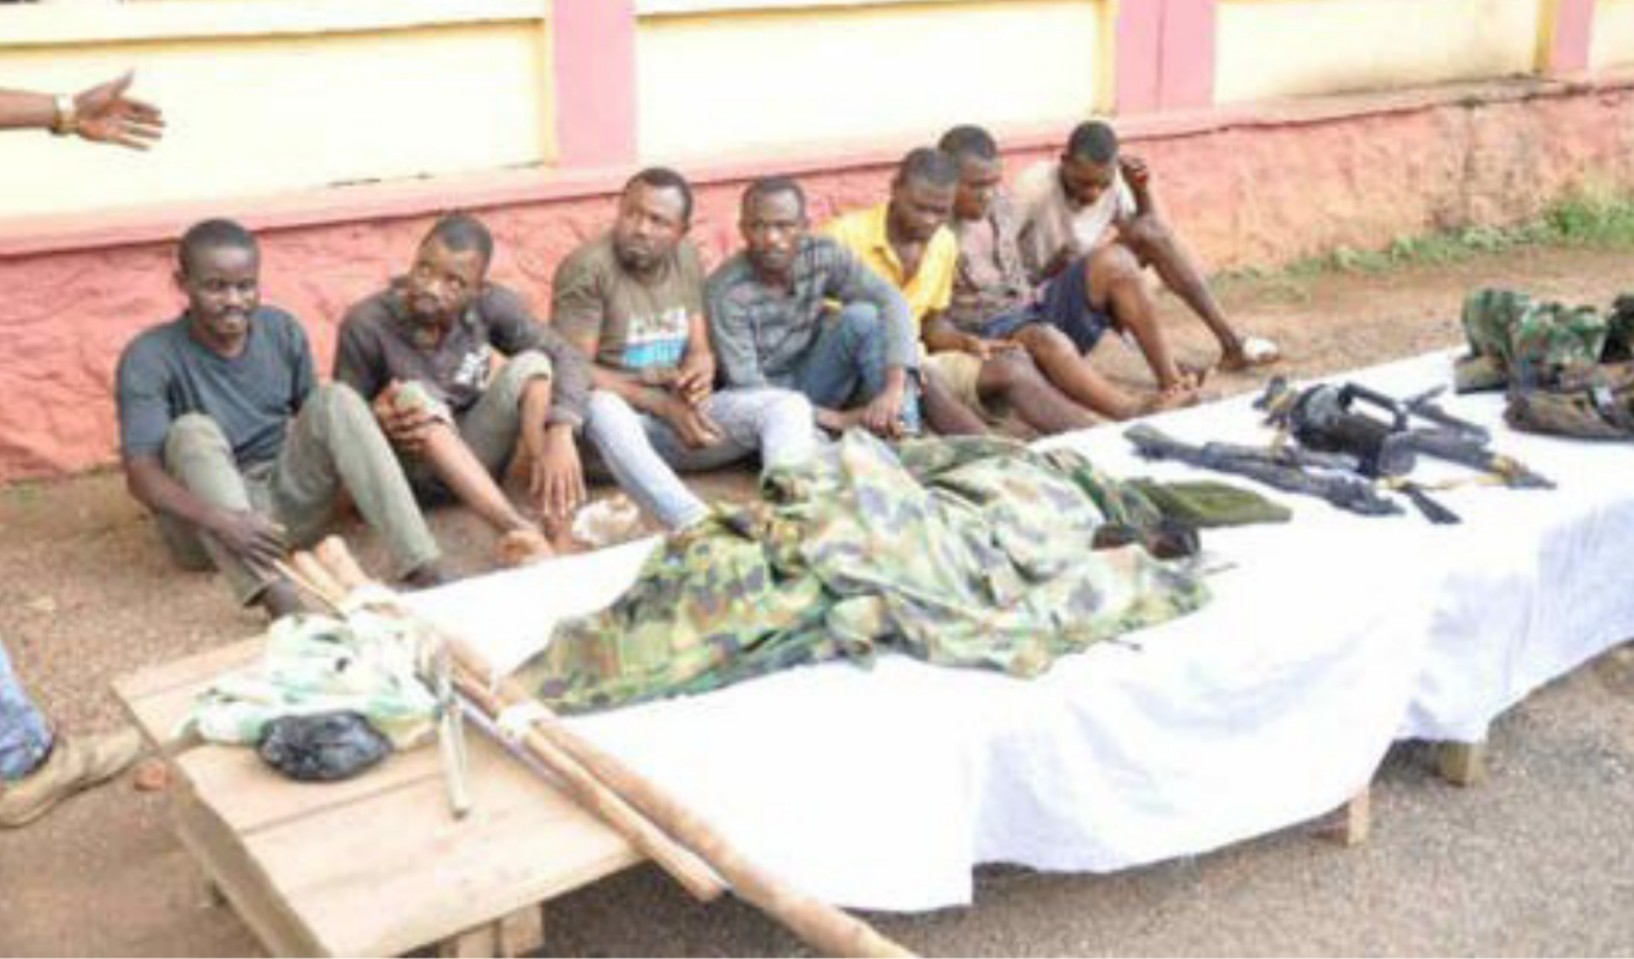 Ogun Police arrest 6 suspected armed robbers operating in military camouflage